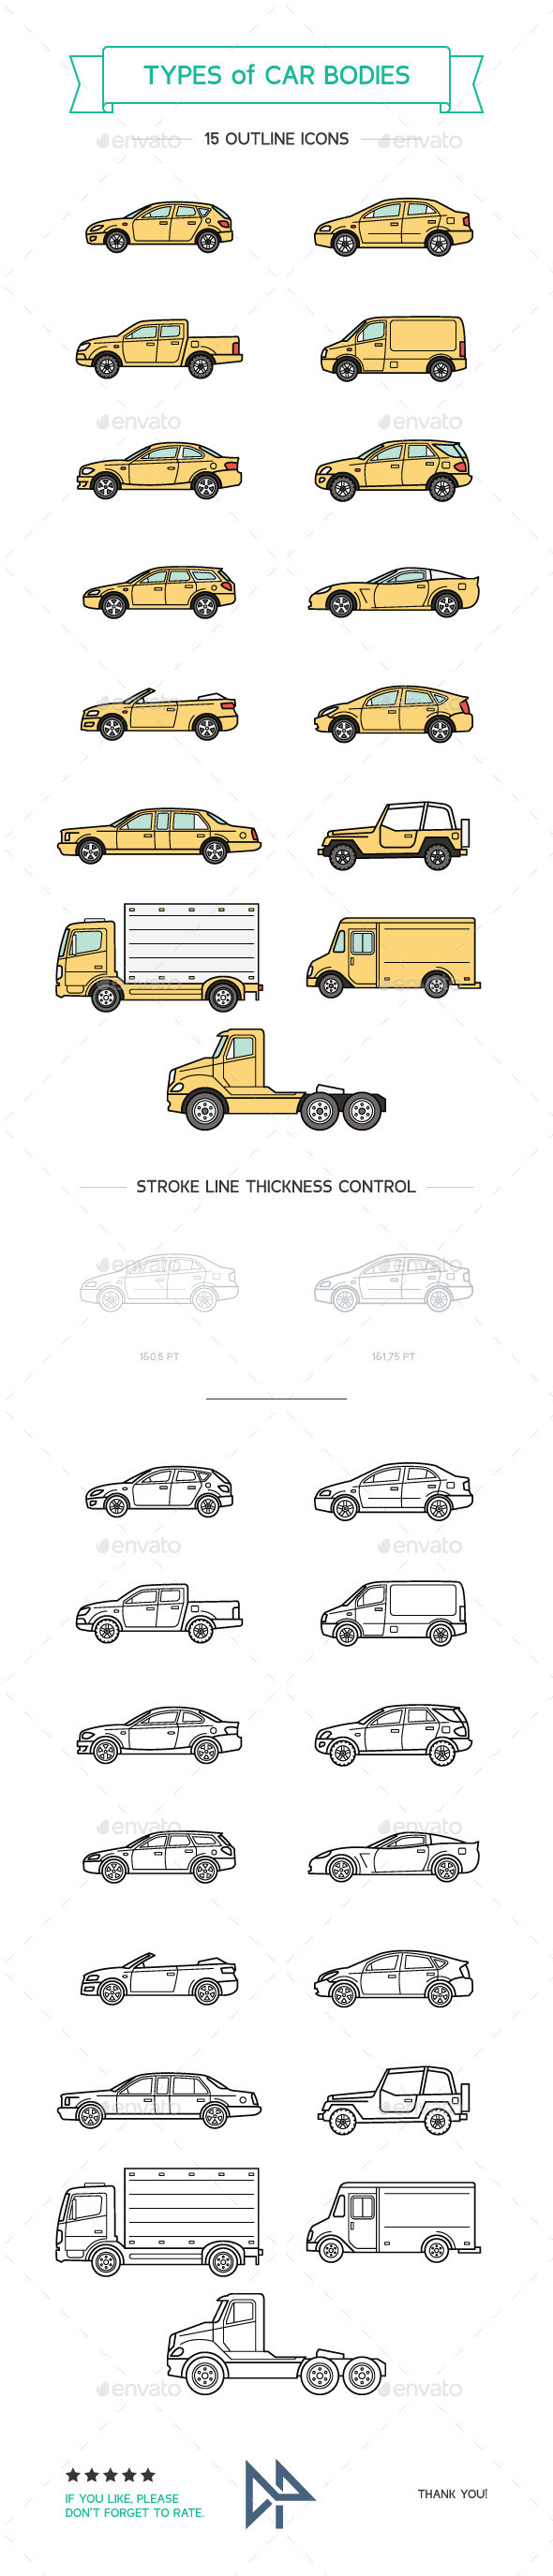 Types Of Car Bodies - Objects Icons